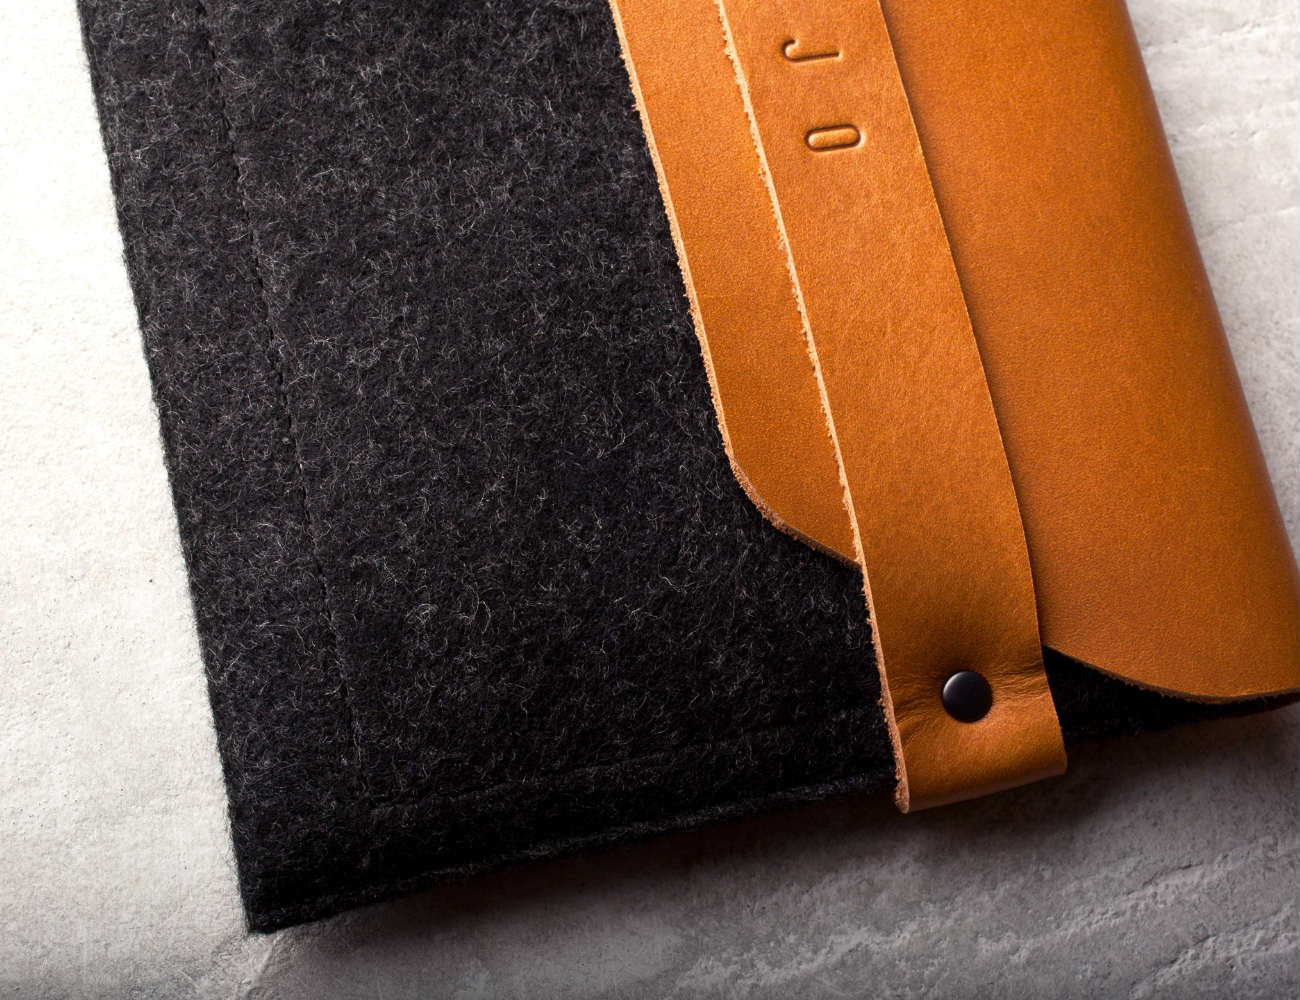 ipad-mini-sleeve-brown-by-mujjo-03